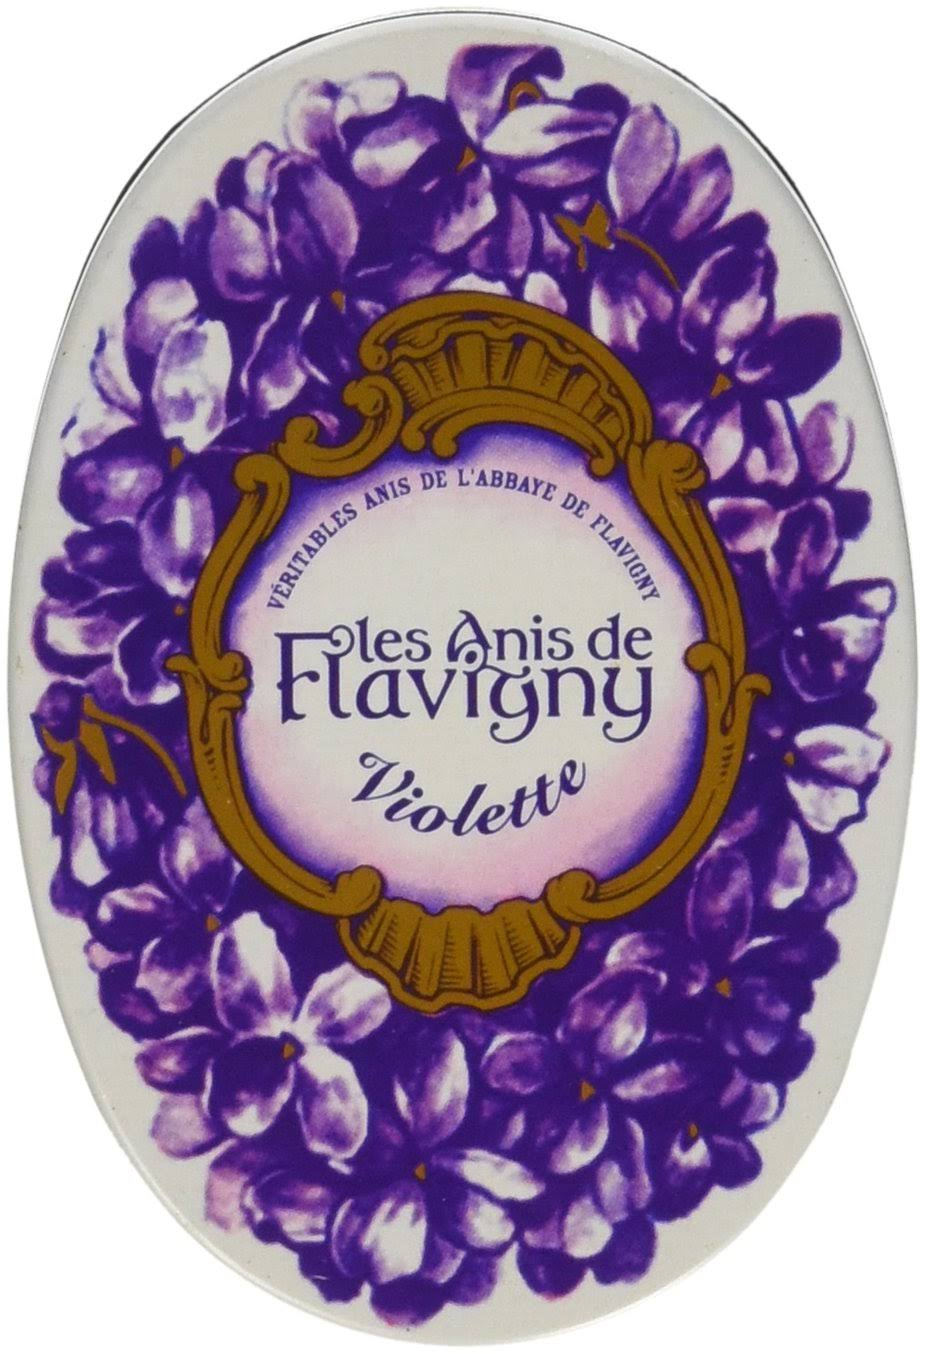 Violet Flavored Hard Candy 50 G by Les Anis de Flavigny